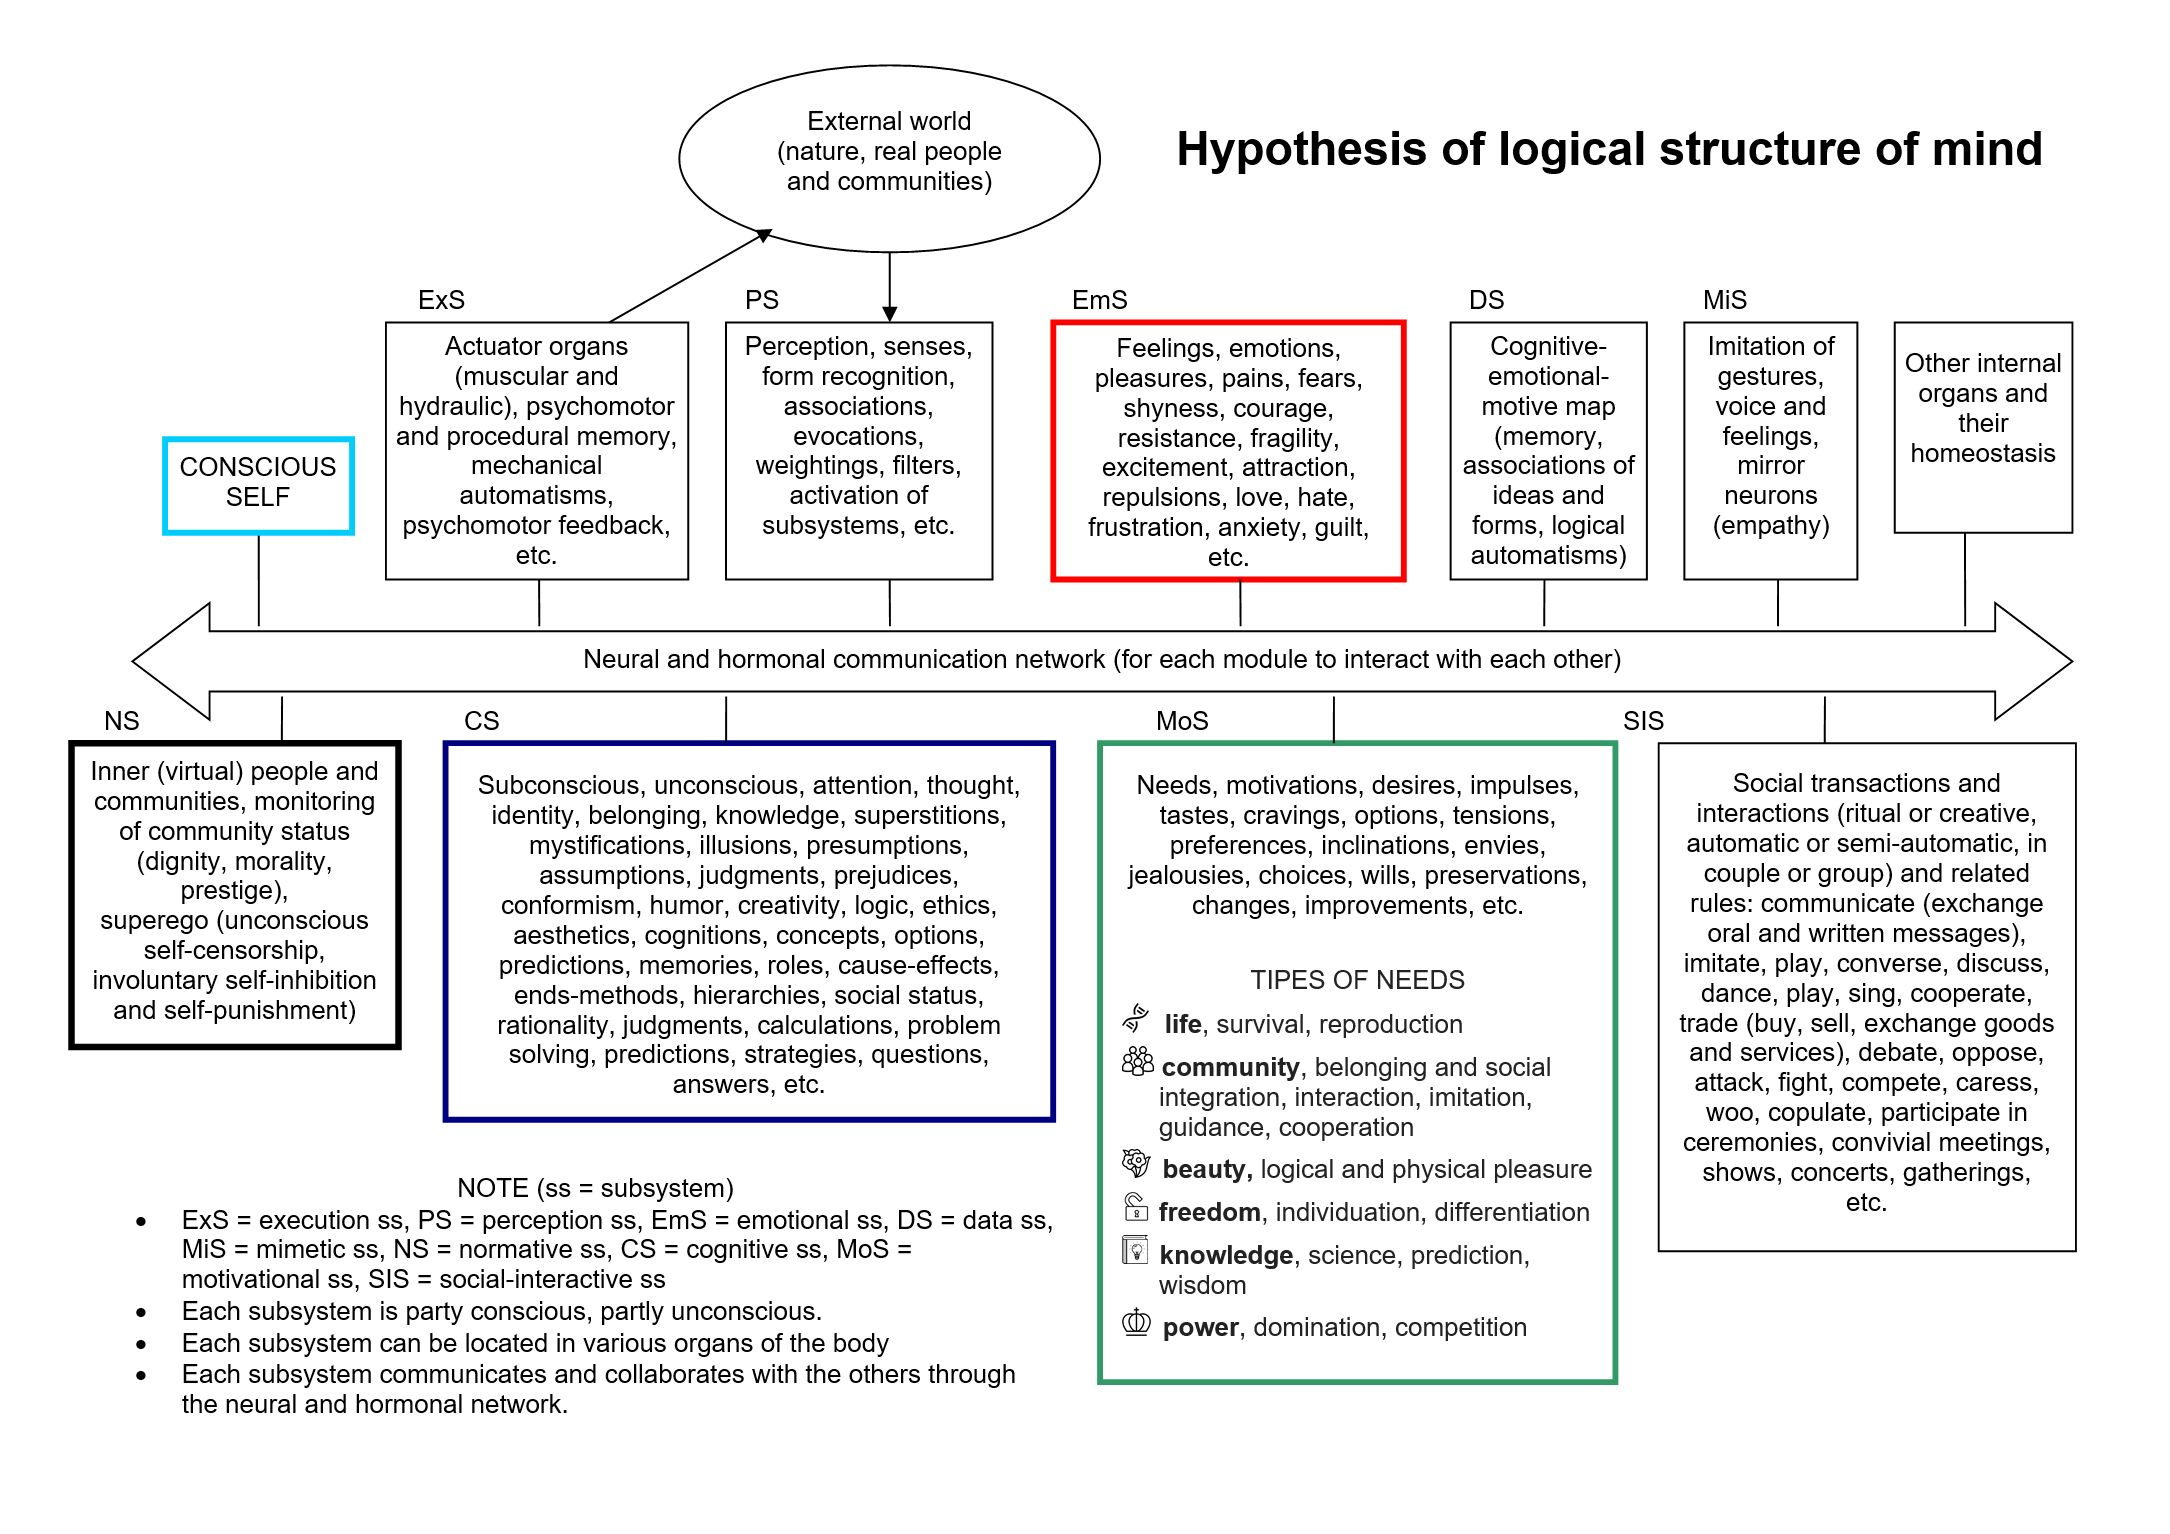 Logical structure of mind